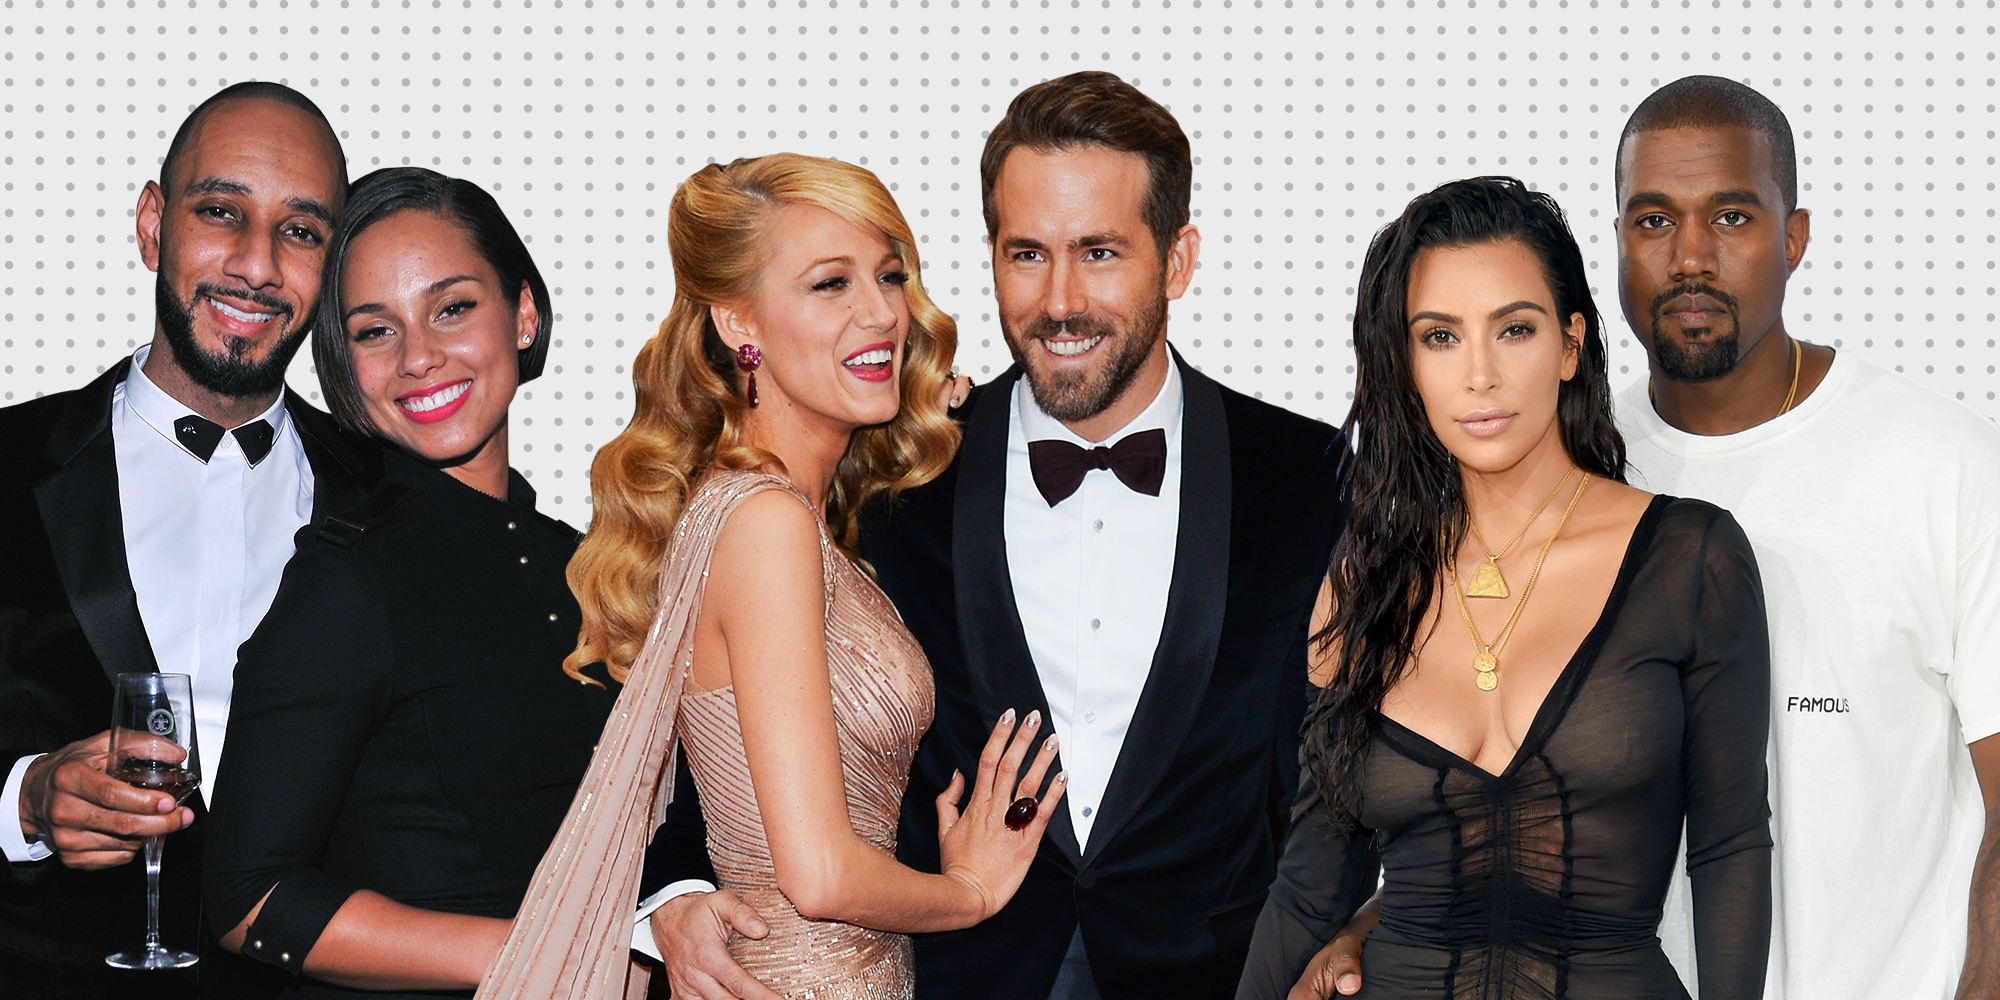 53 Most Unforgettable Celebrity Weddings of the Last Decade